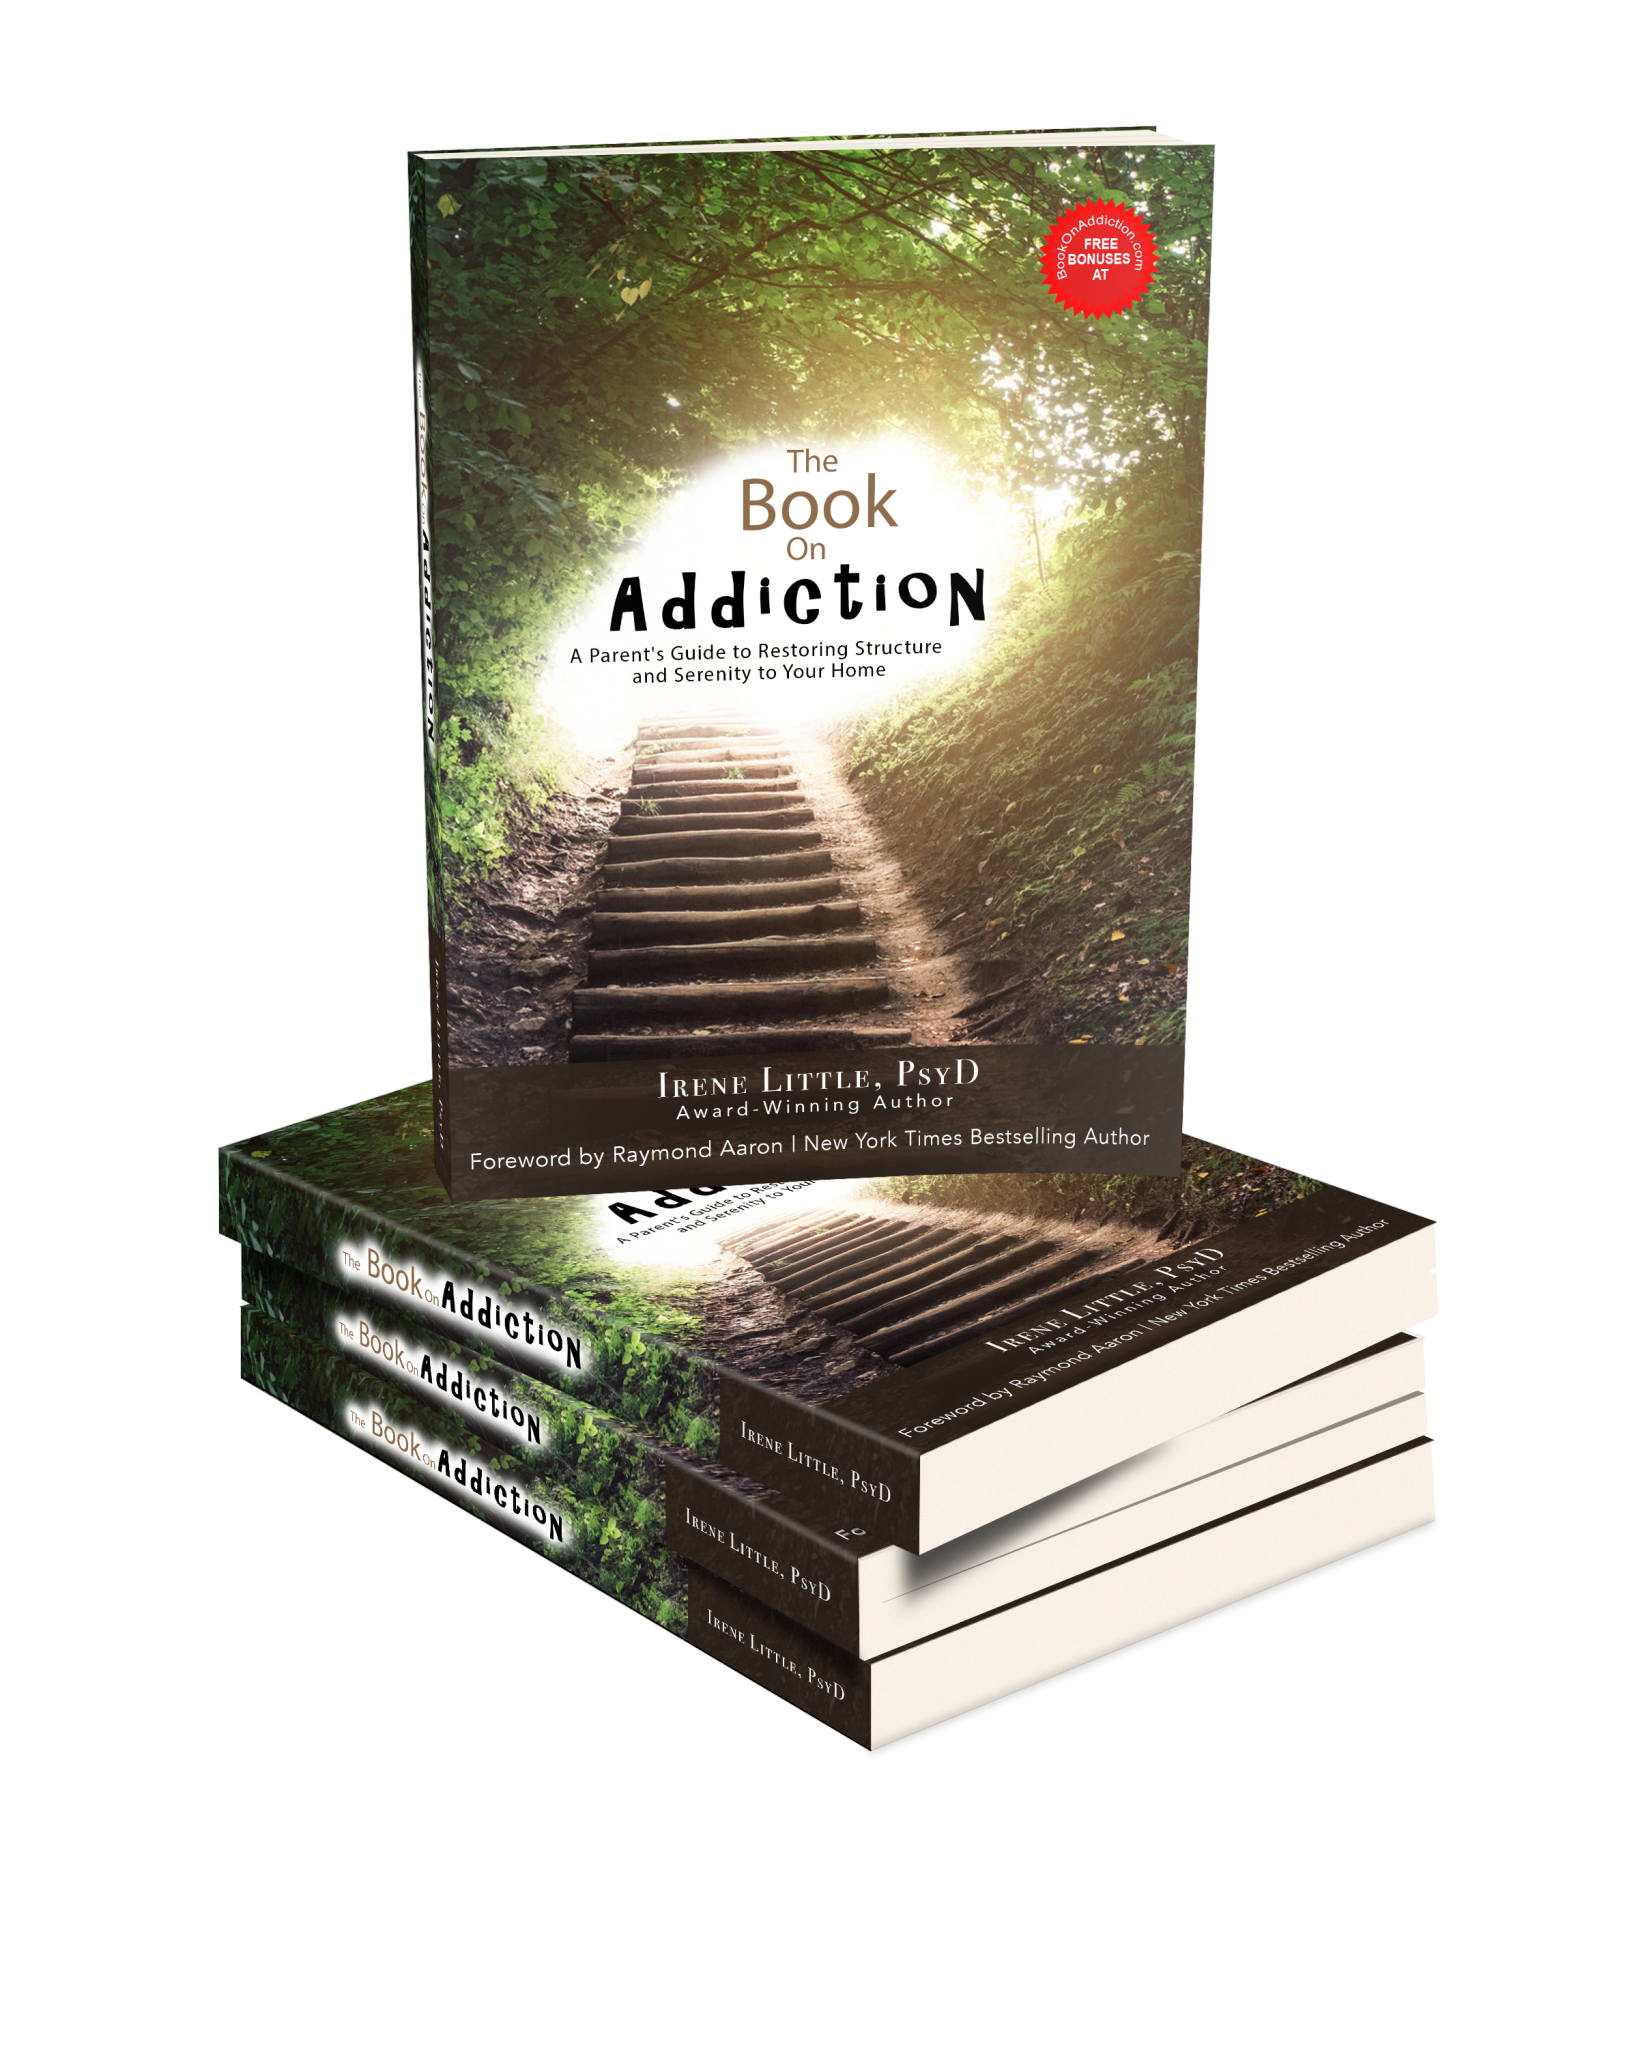 the book on addiction by dr. irene little